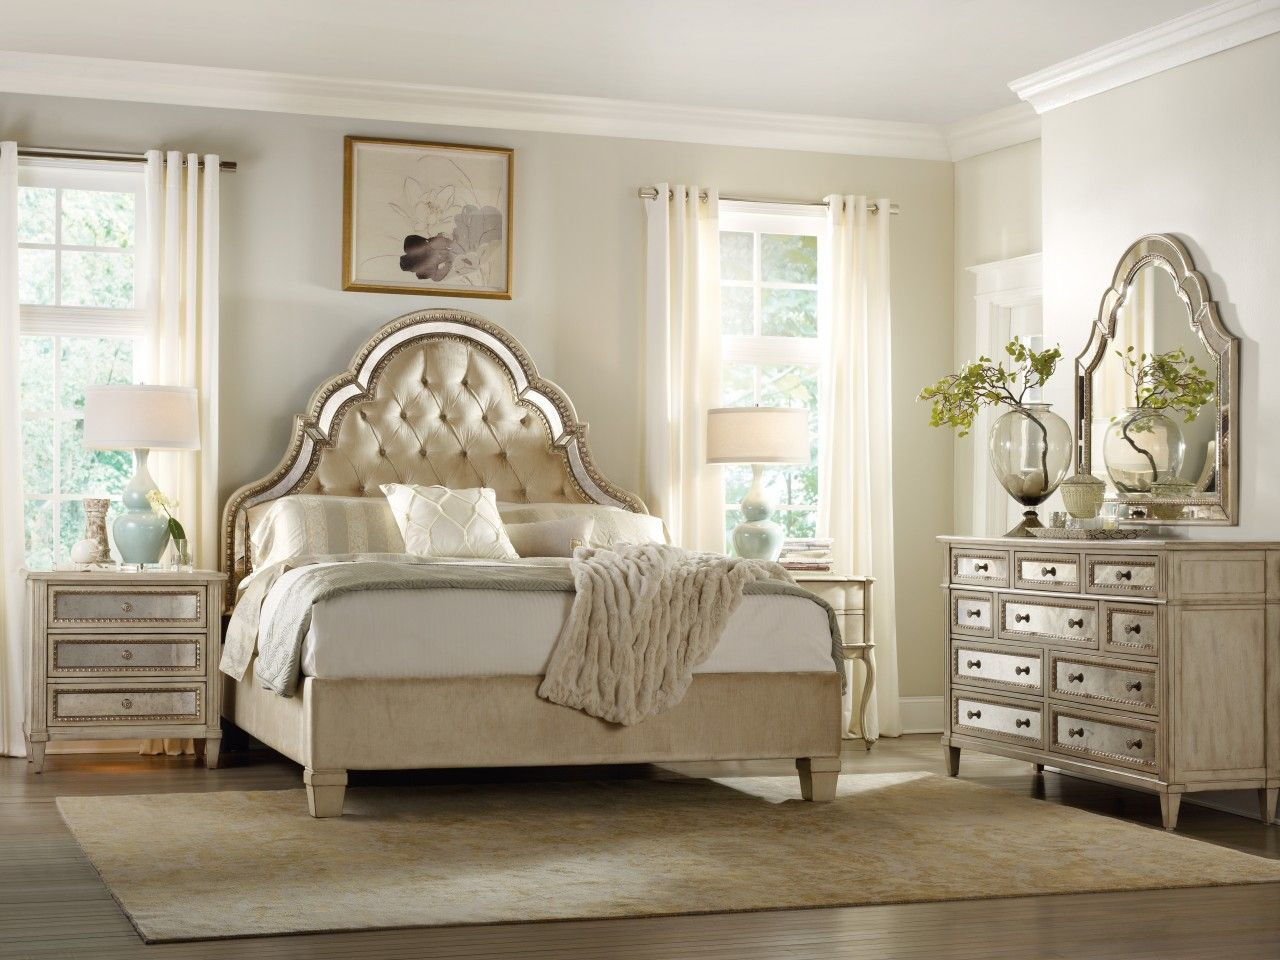 mirror-bedroom-furniture-set-with-curved-carving-frame-on ...